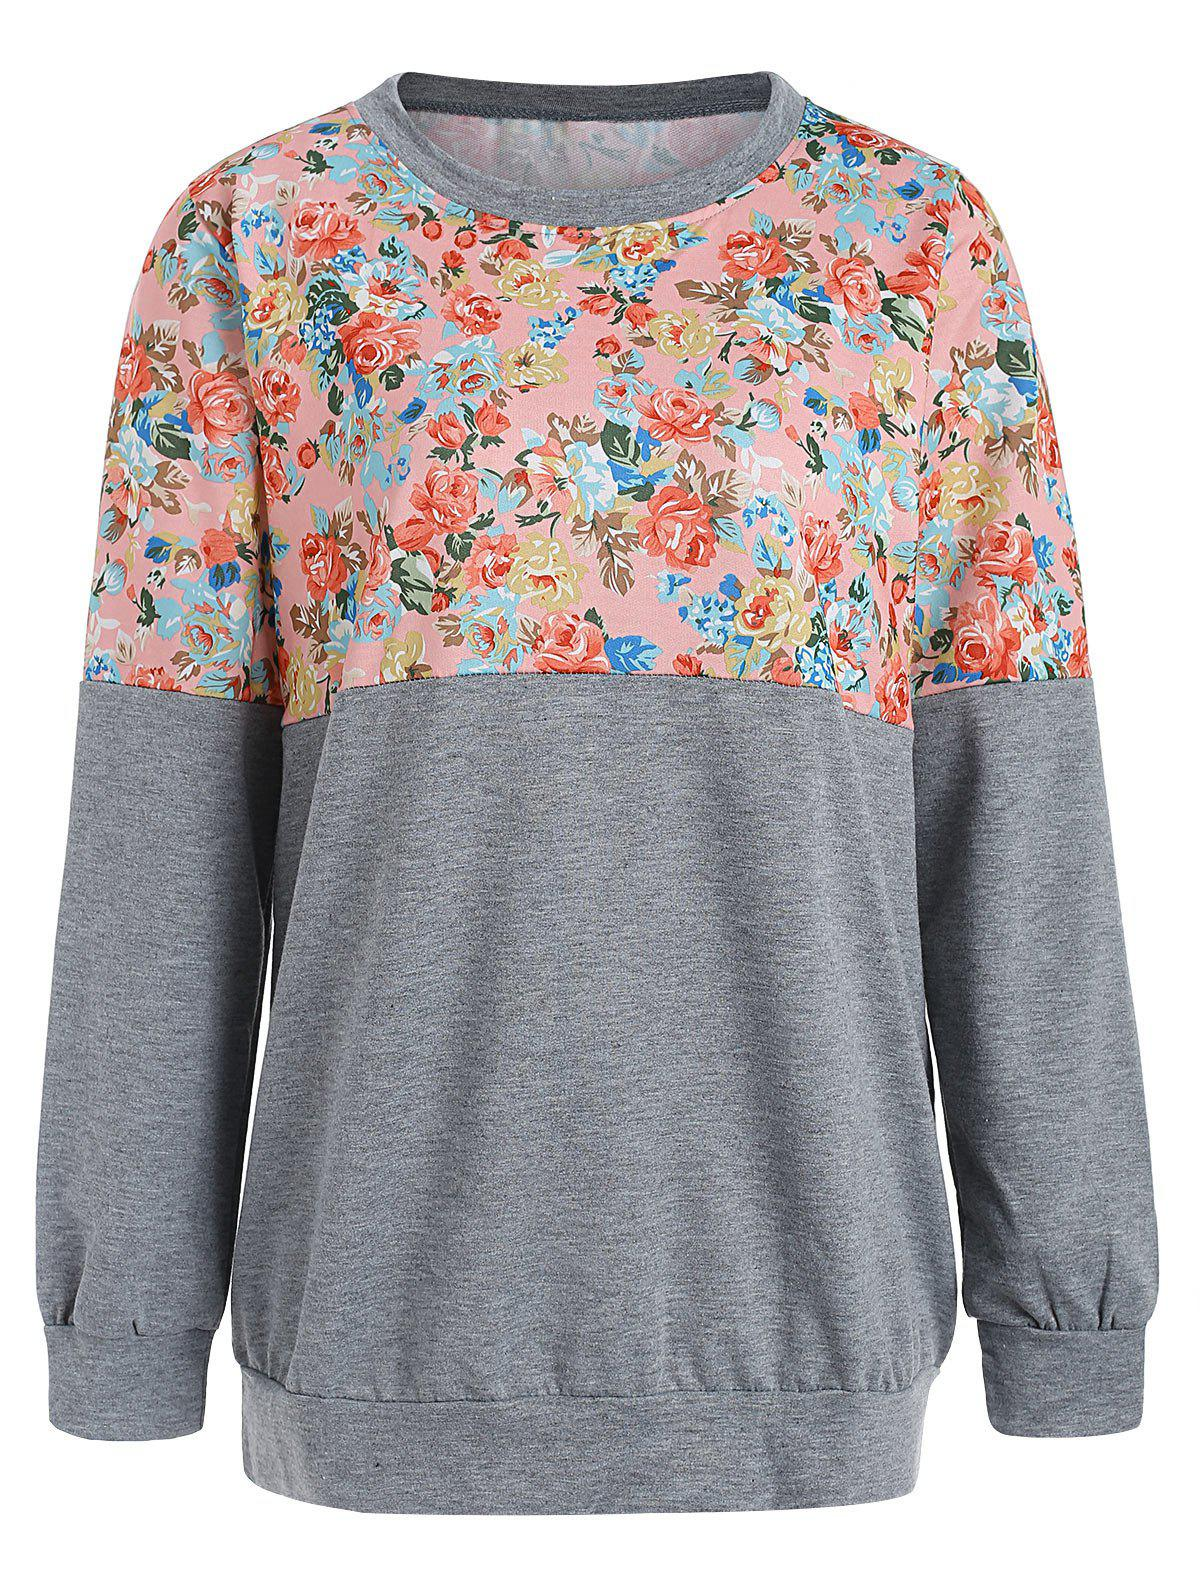 Sweat-shirt Floral Imprimé en Blocs de Couleurs